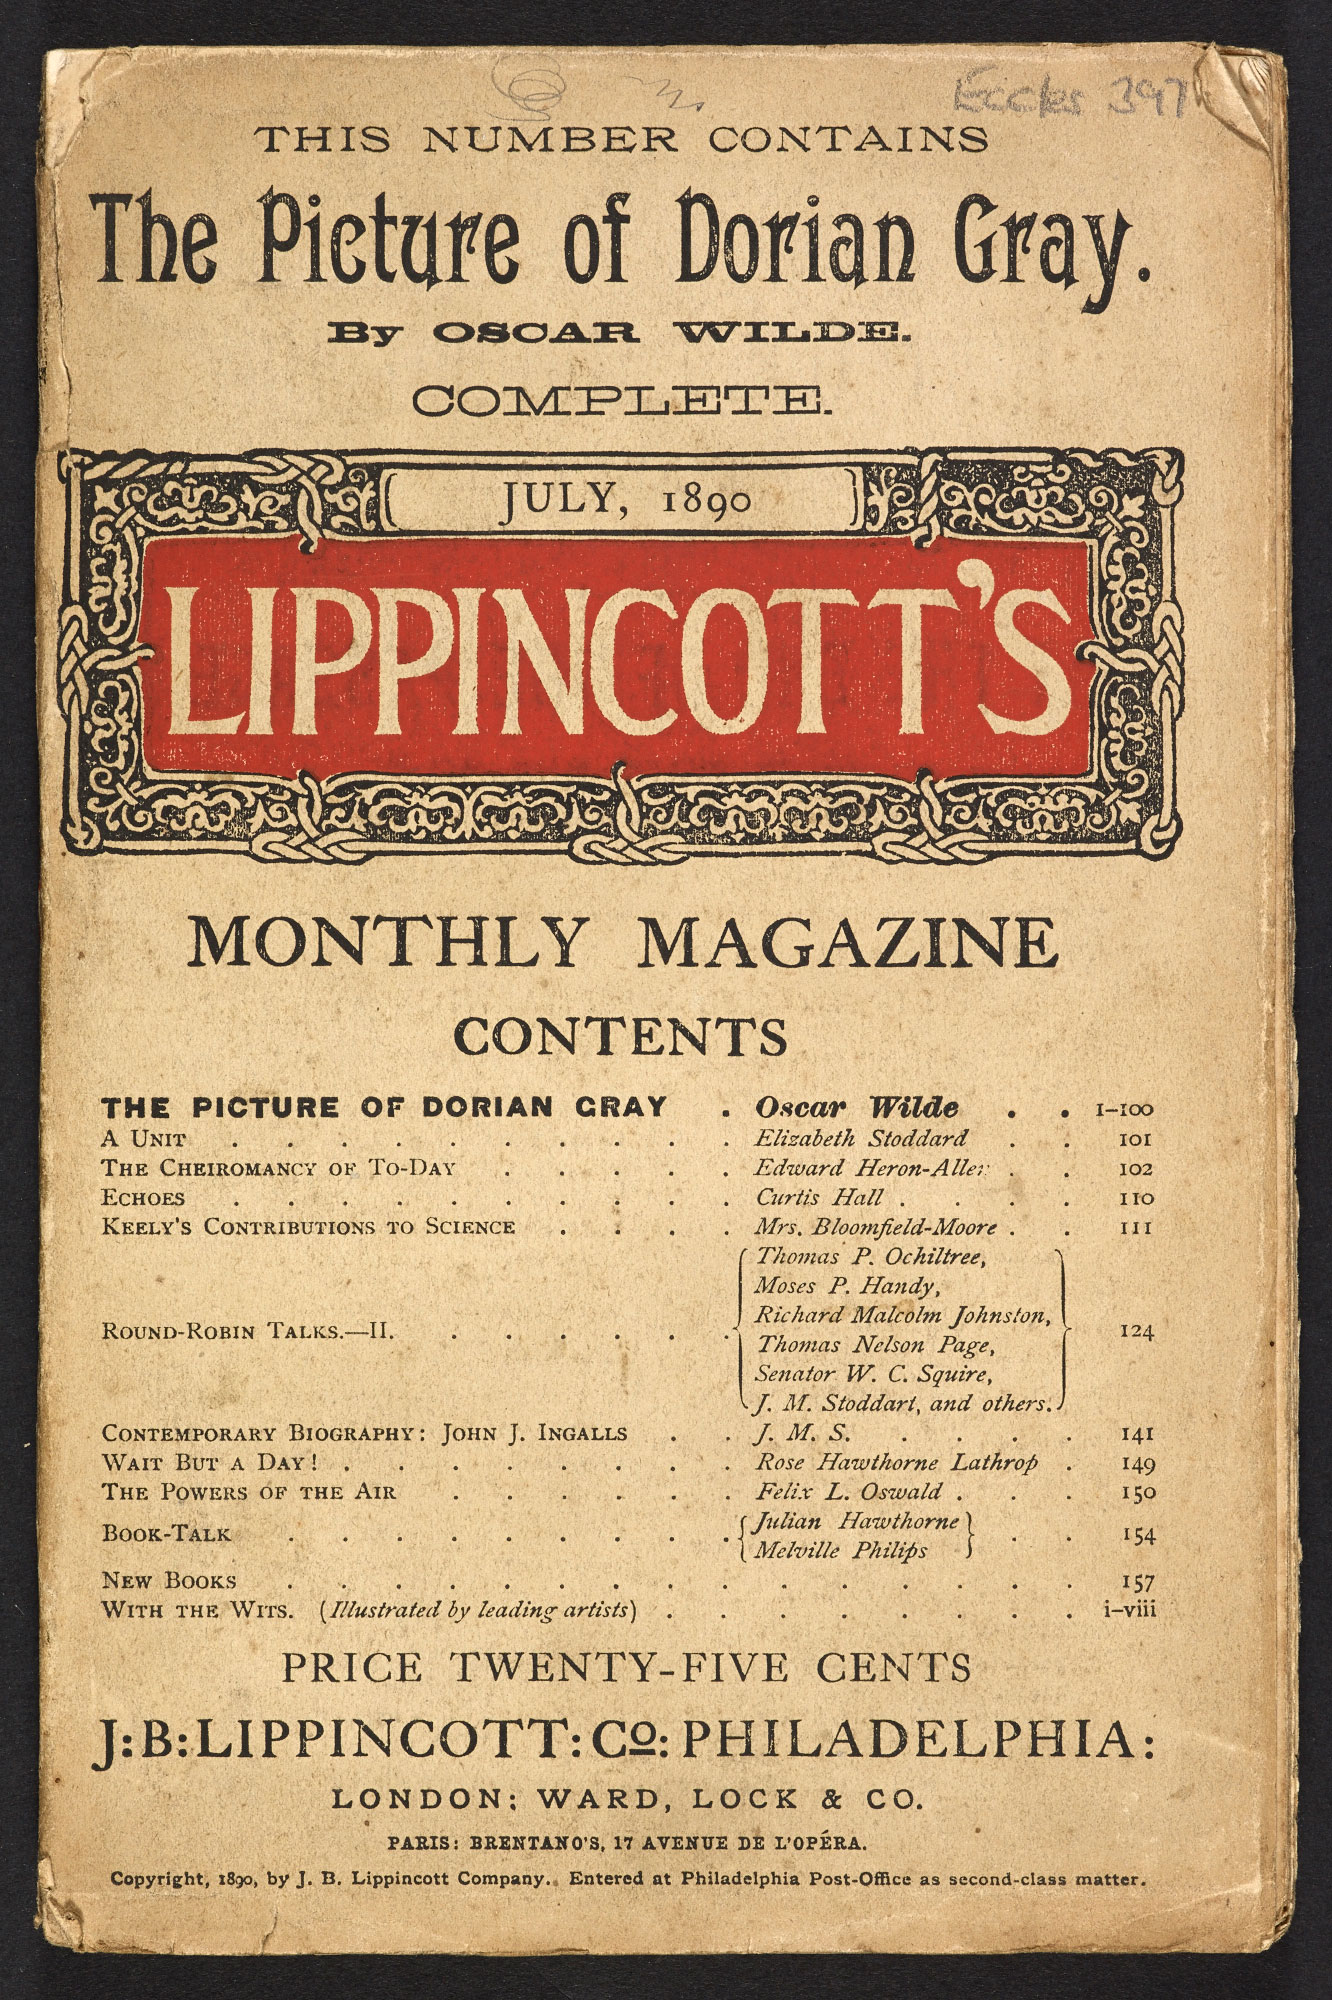 The Picture of Dorian Gray as first published in Lippincott's Magazine